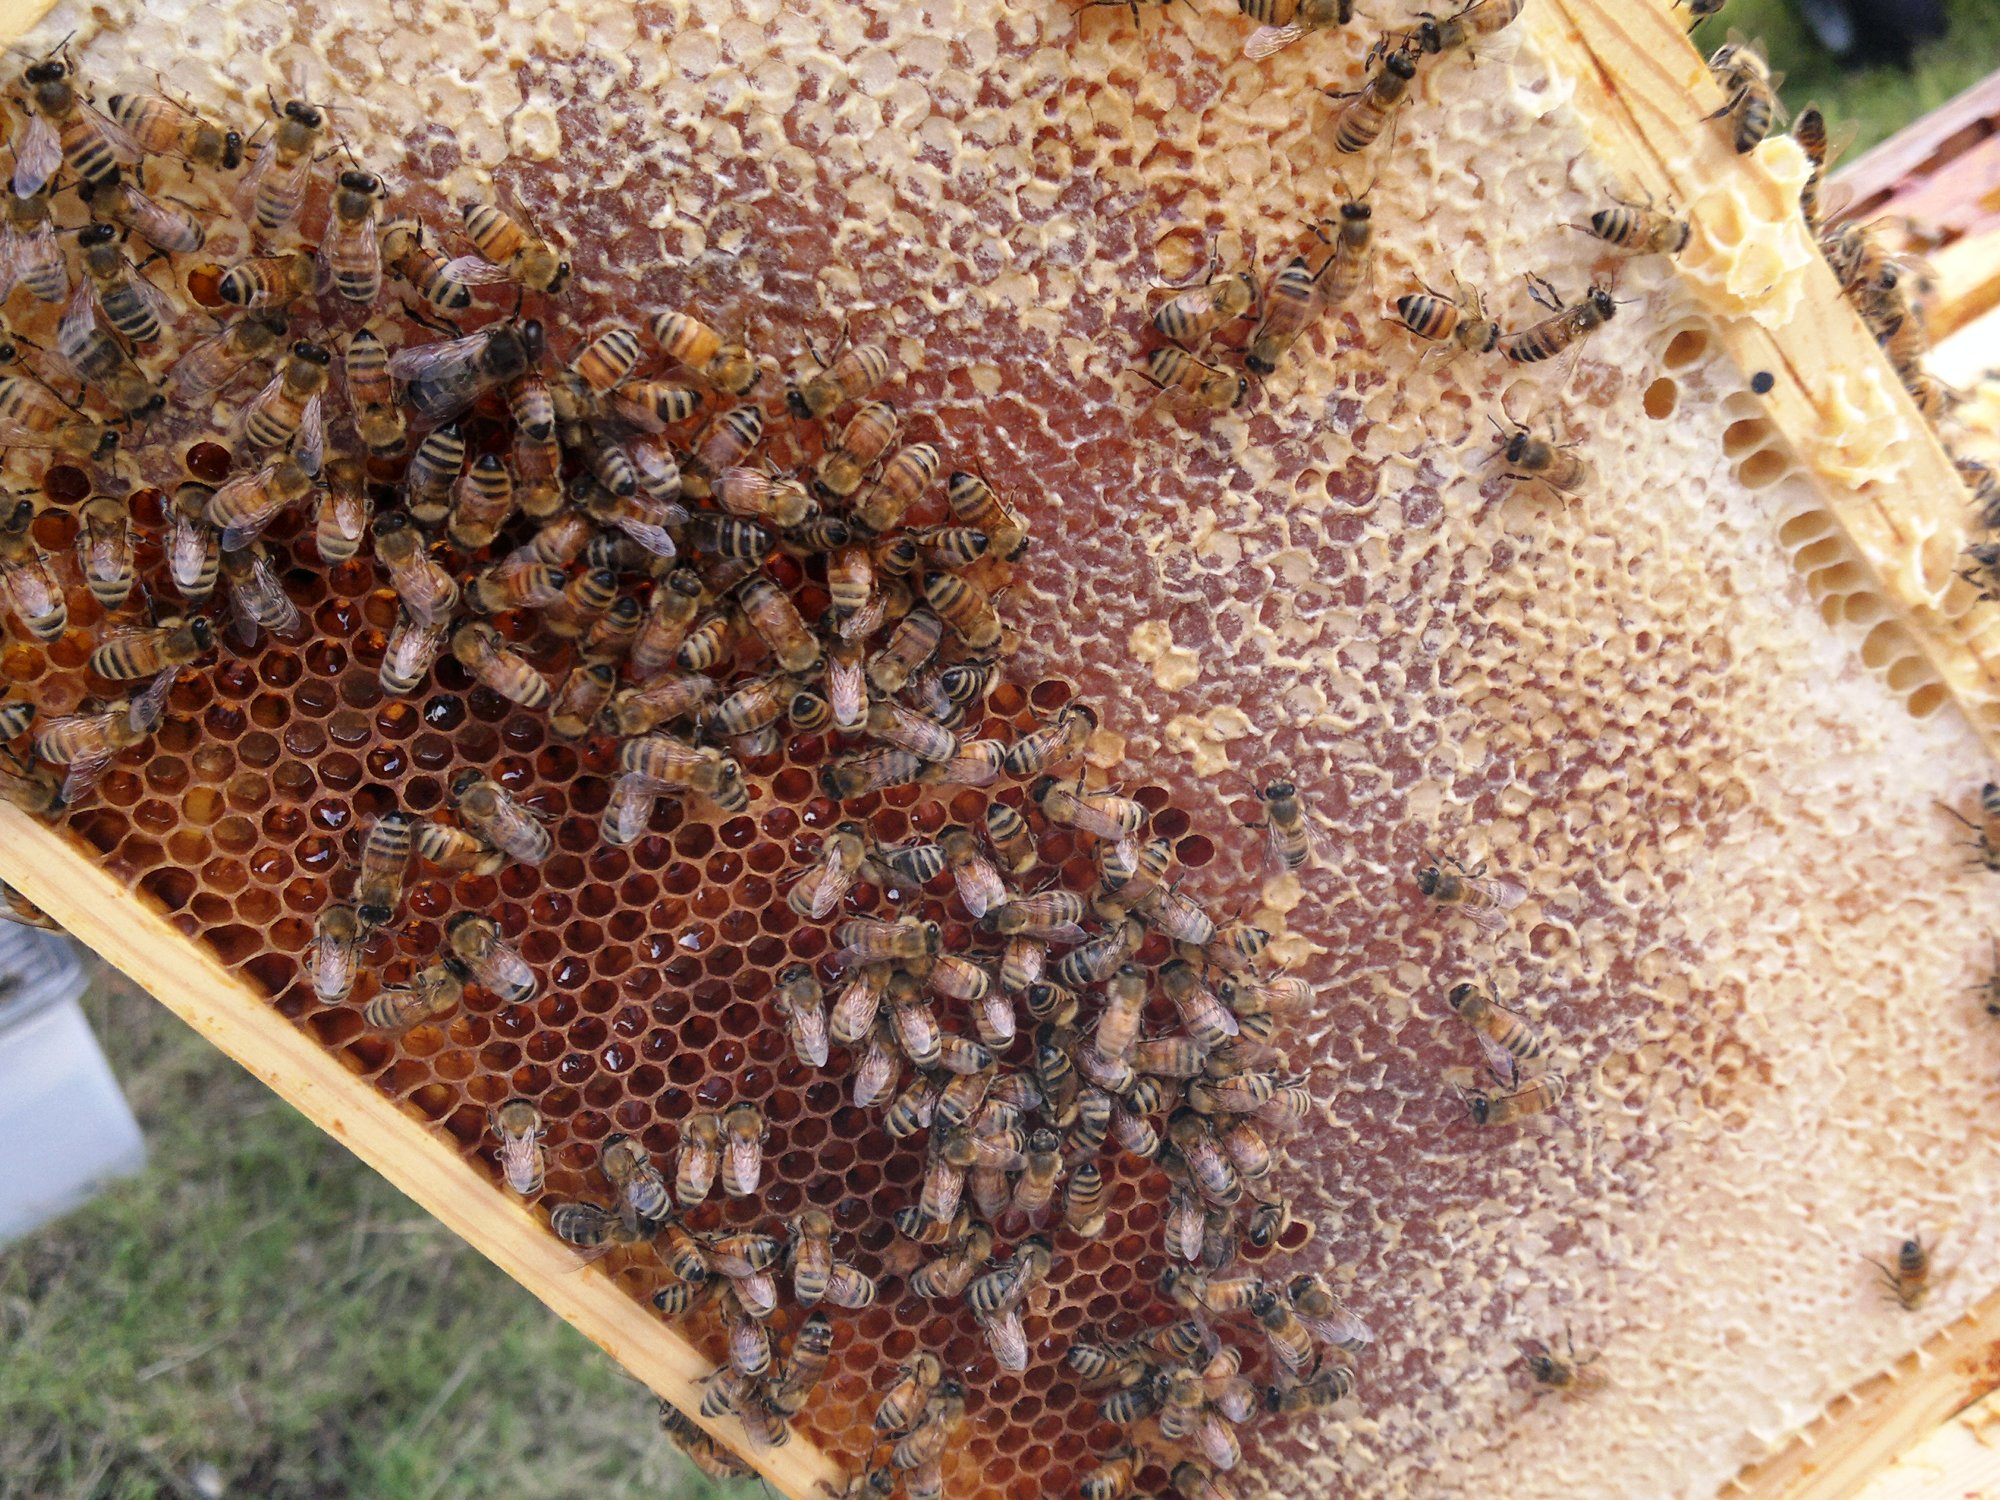 The former brood area on this frame is now entirely taken over by honey and pollen